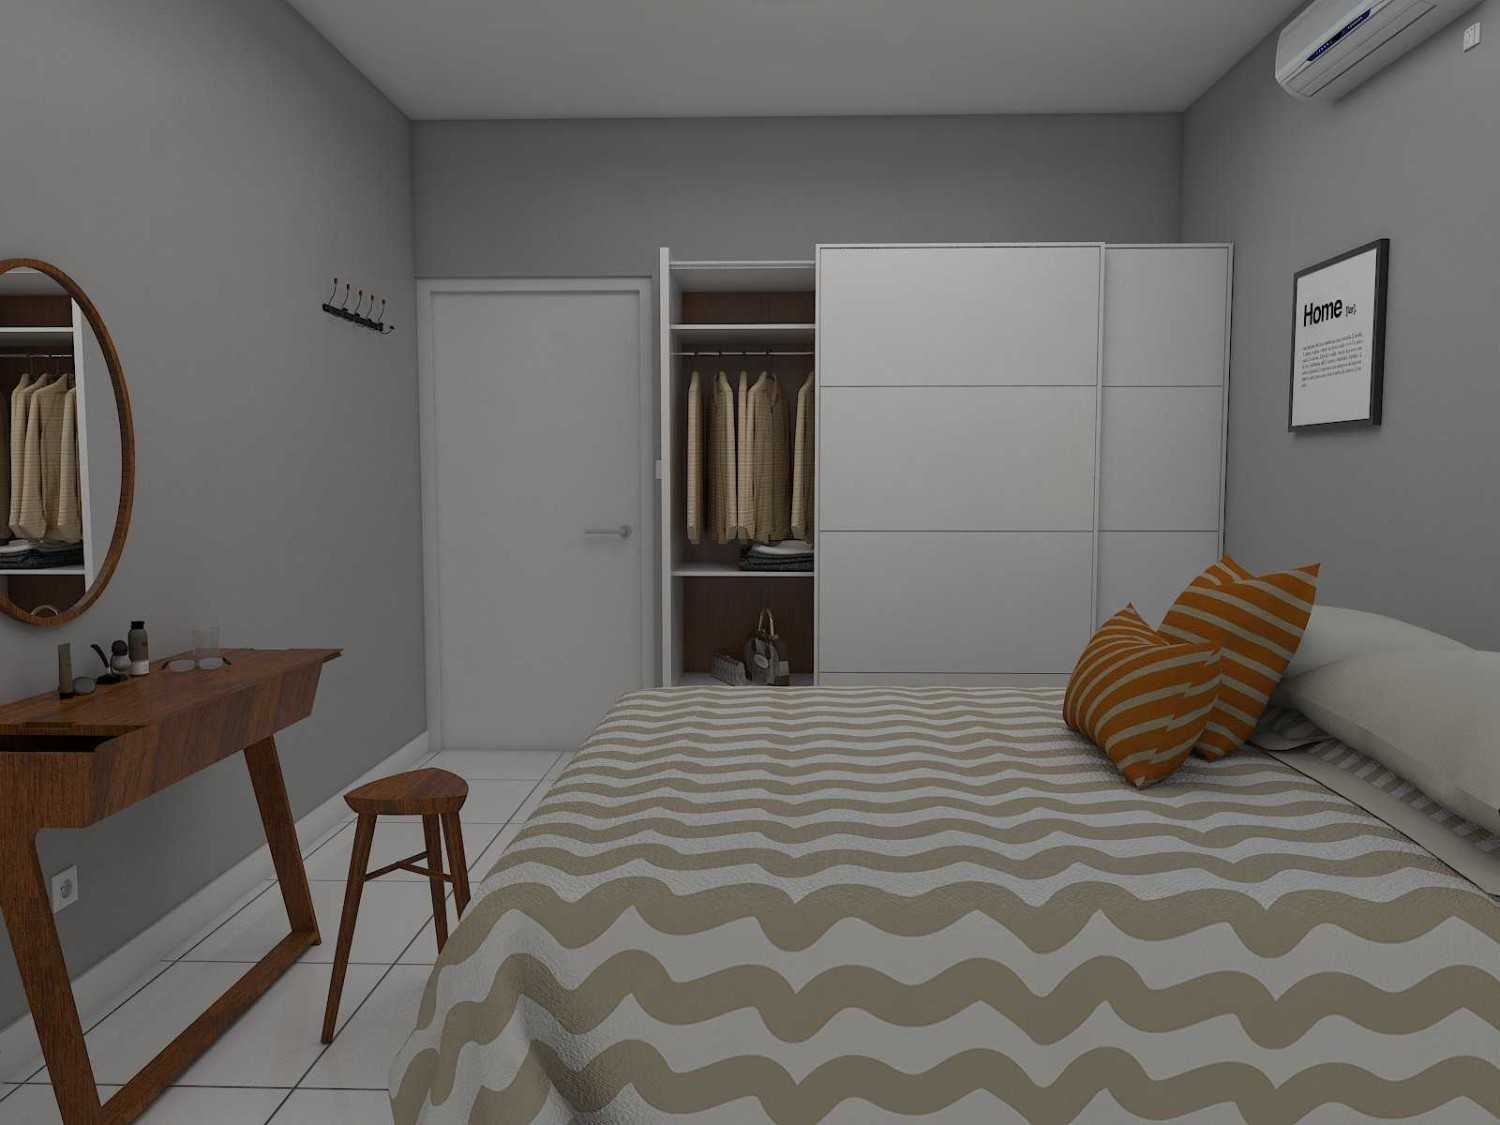 Donnie Marcellino Mr.f's House  Gg. Buntu 2, Jatimelati, Pondokmelati, Kota Bks, Jawa Barat 17415, Indonesia Guest Bedroom Design Kontemporer 30166